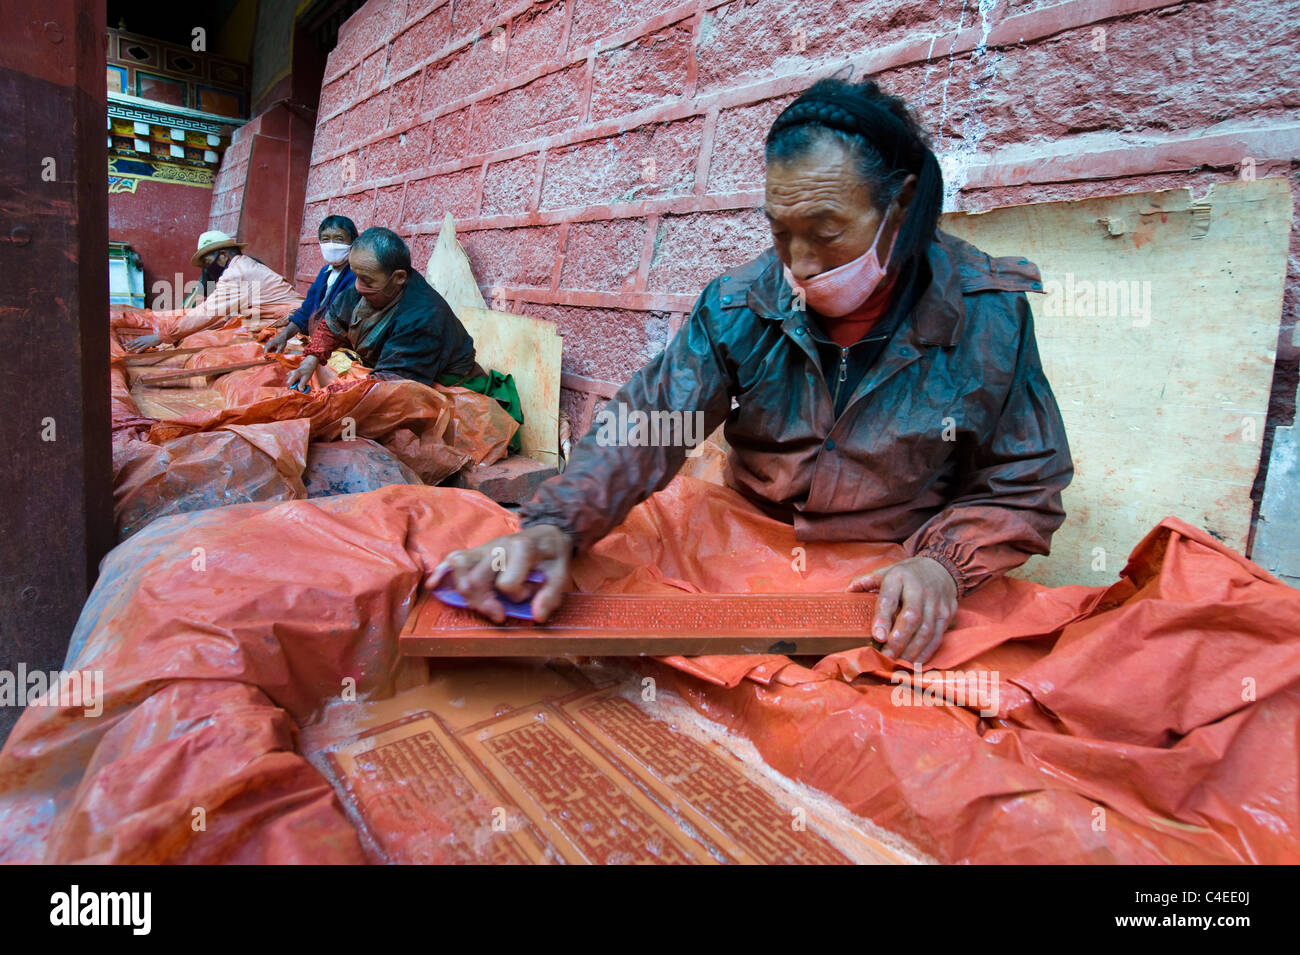 Washing and cleaning the wooden printing blocks at Dege Scripture Printing House, Dege, Sichuan, China - Stock Image